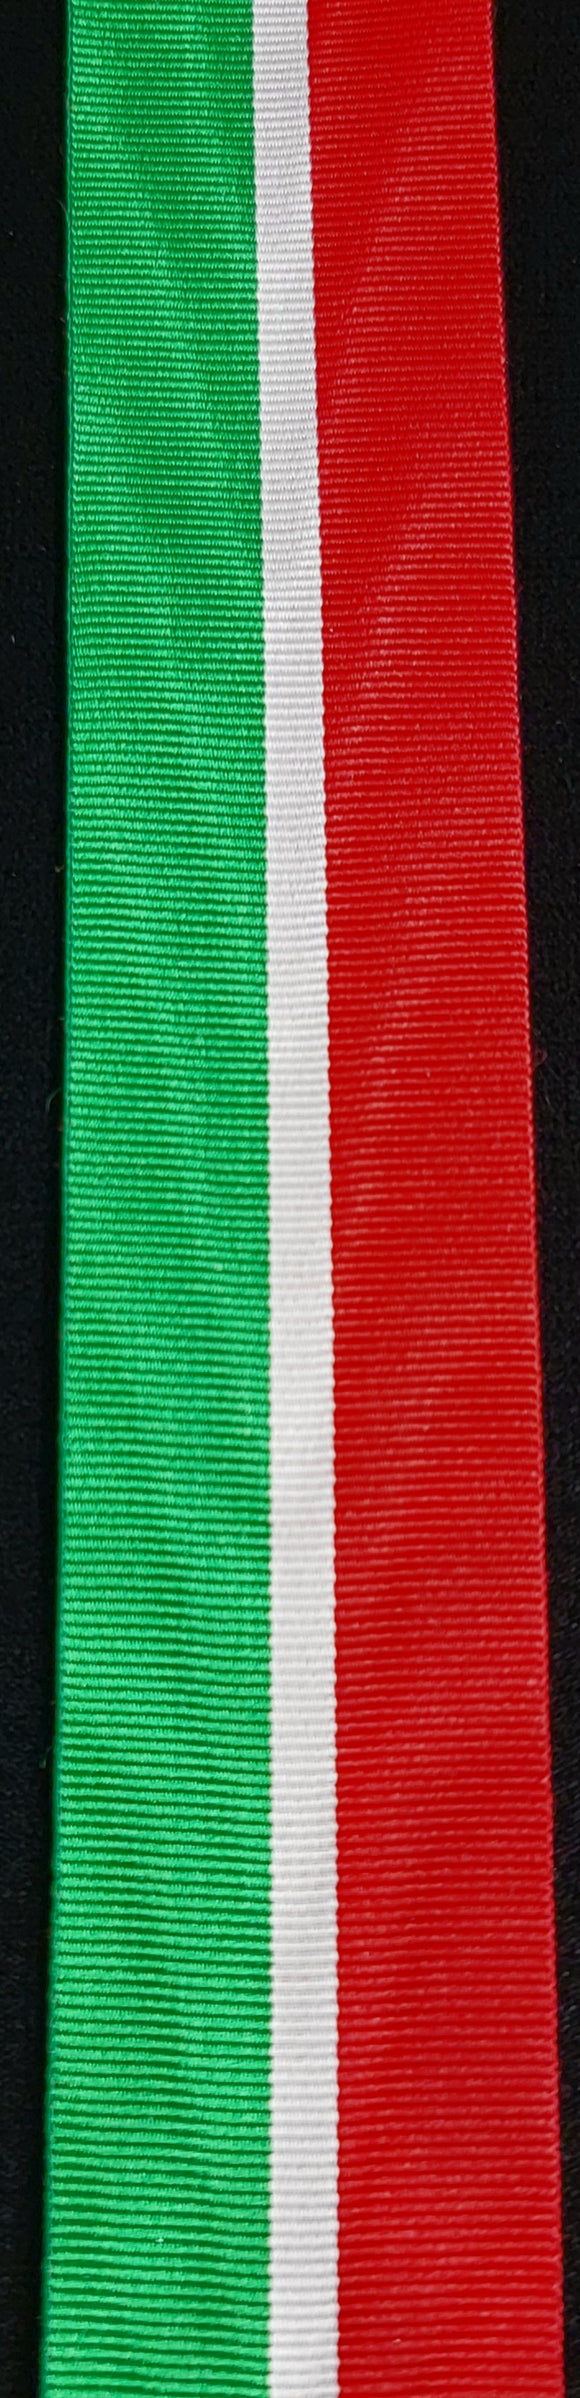 Ribbon, WW1 Mercantile Marine War Medal